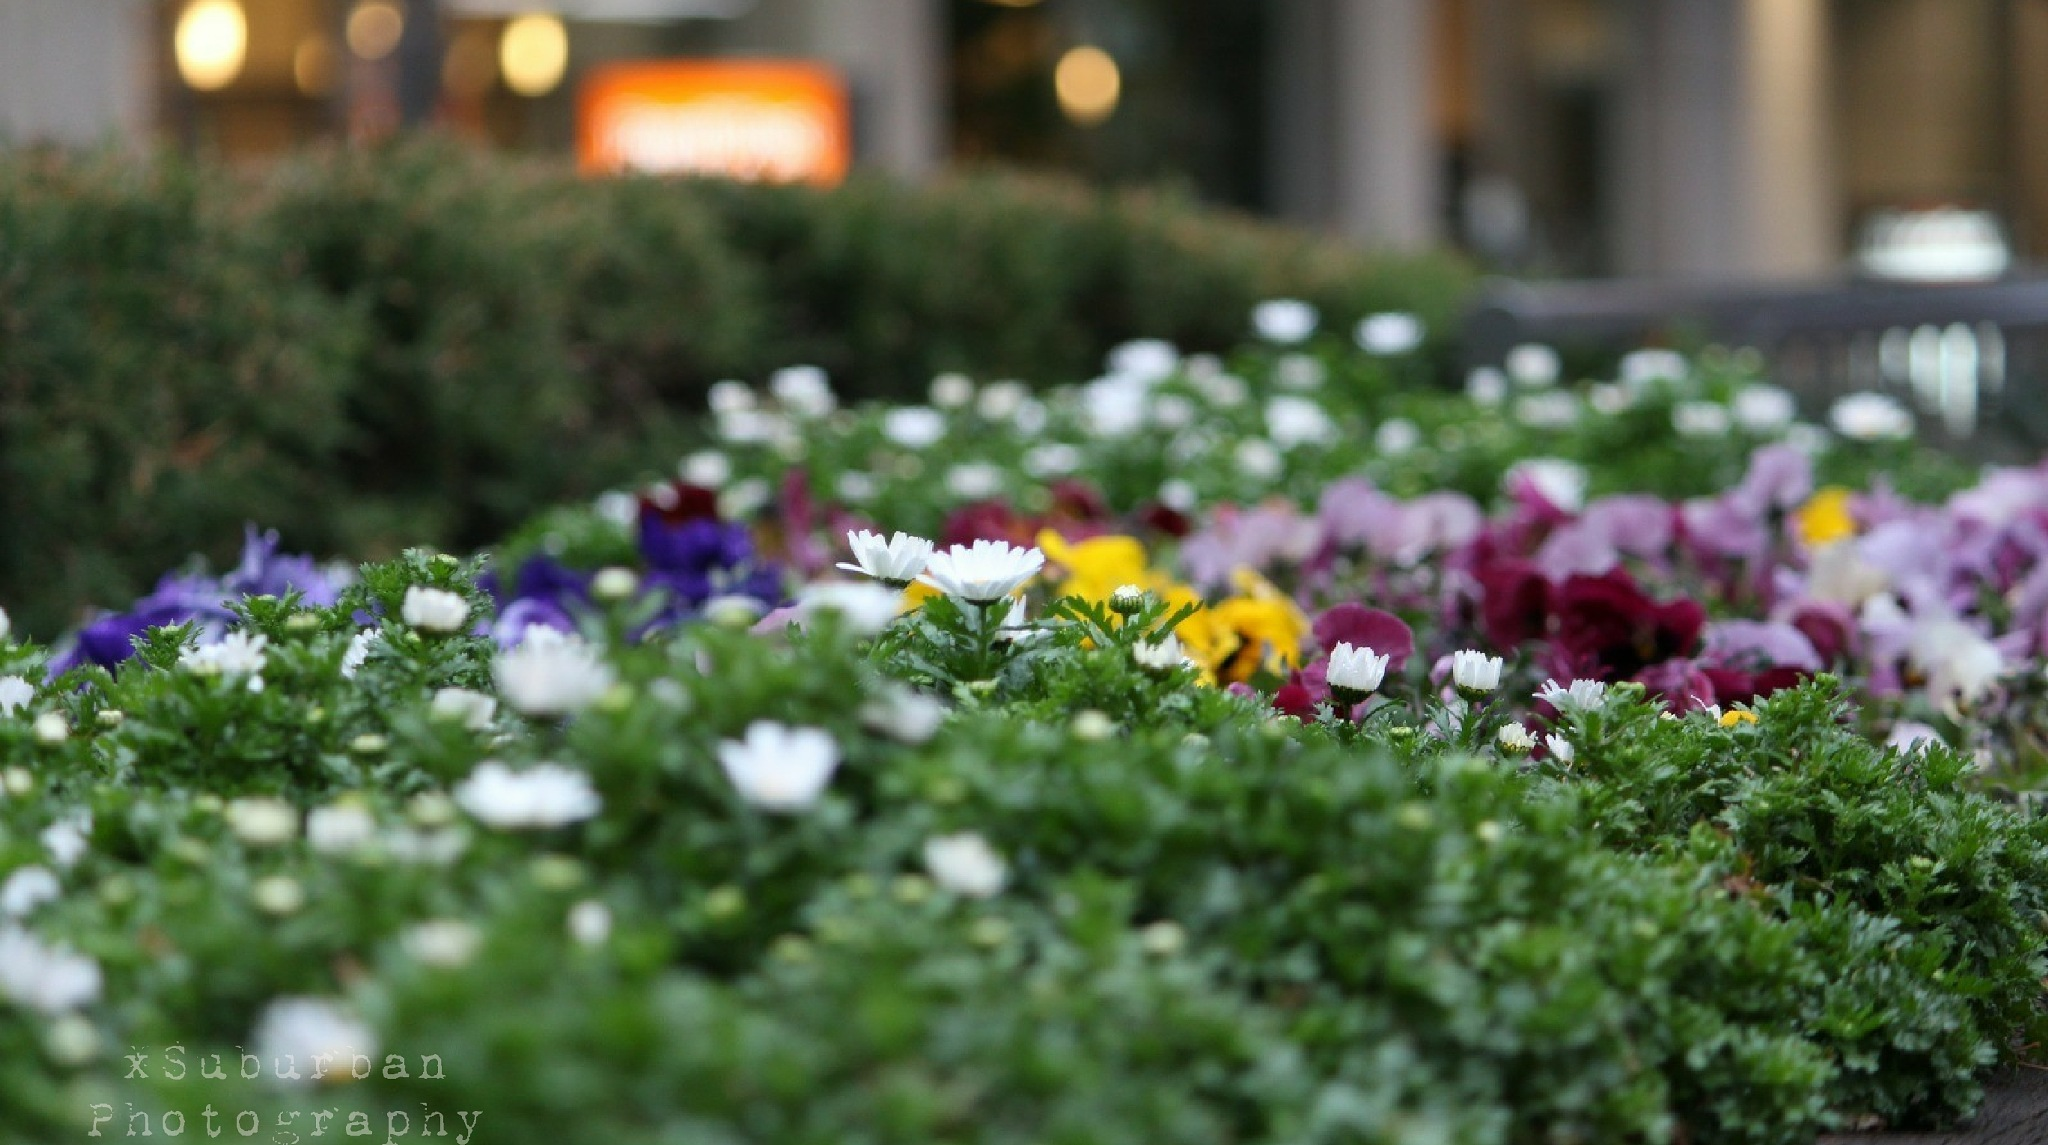 Flower bed by xSuburban_Photography